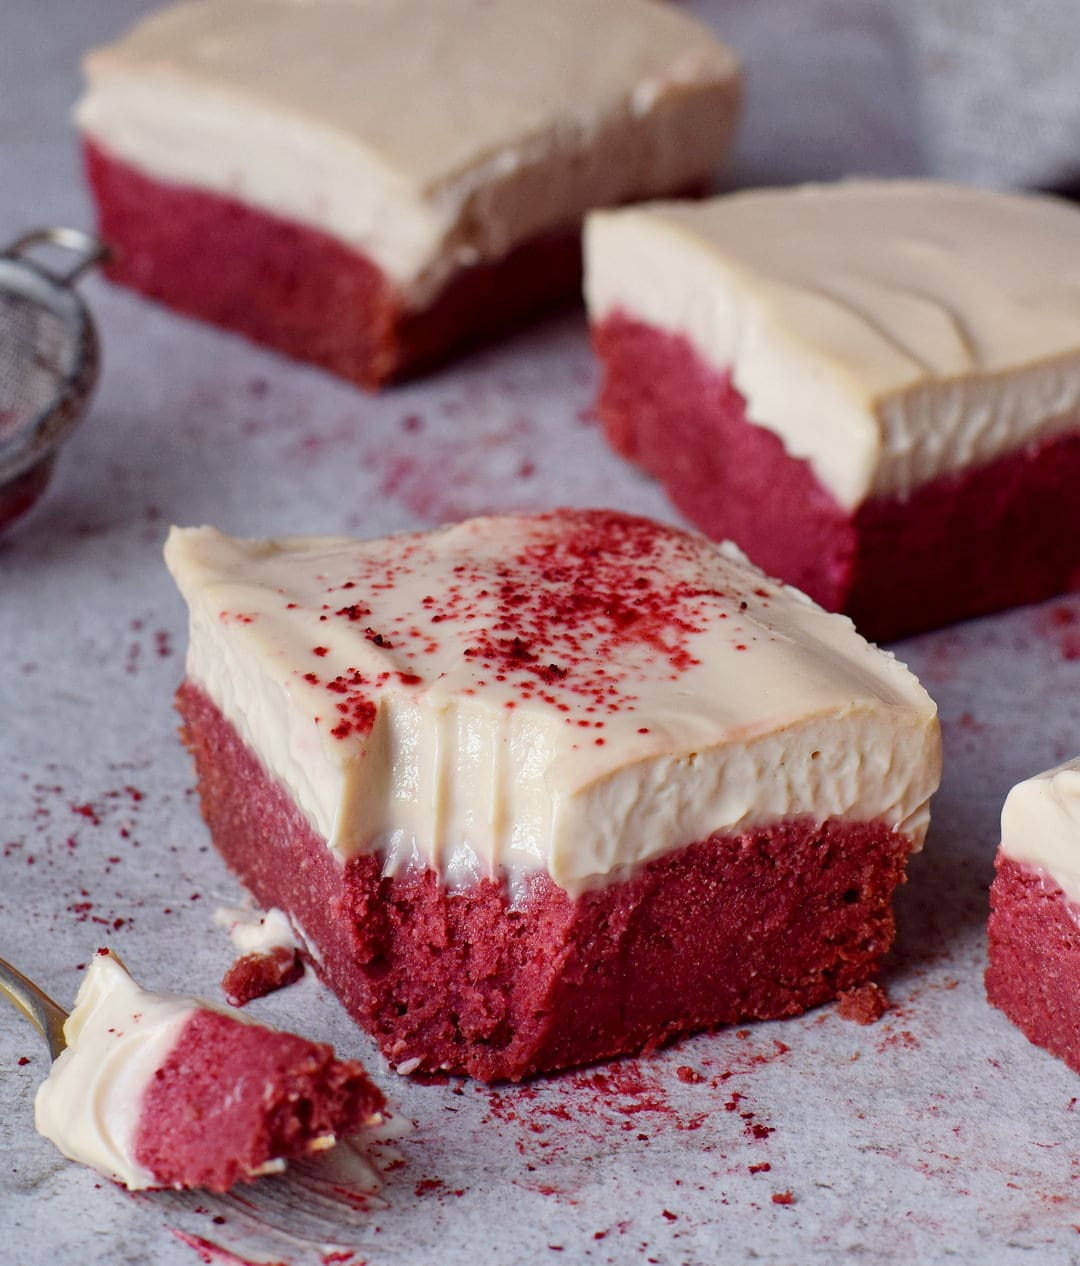 Easy to make healthy red velvet bars with cashew cream gluten-free recipe